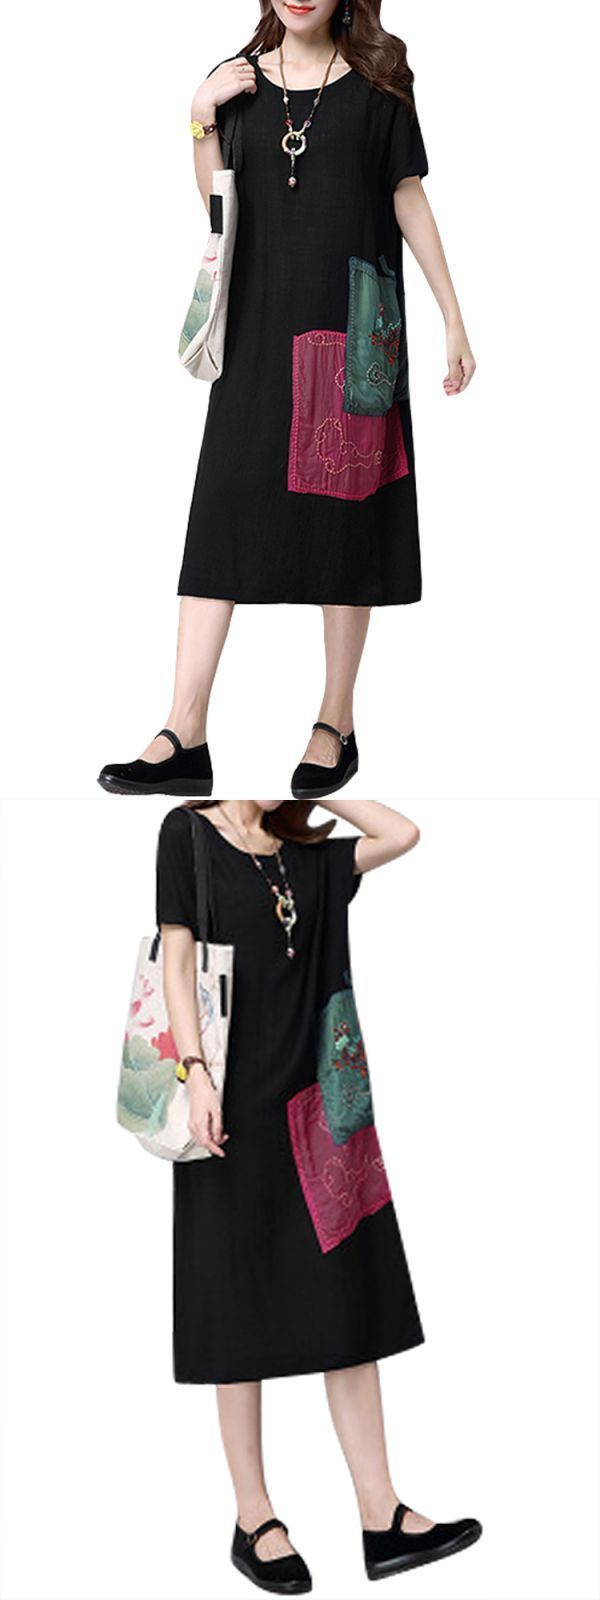 Casual women vintage short sleeve patchwork embroidery loose dress casual summer dresses with 3/4 sleeves #5x #casual #dresses #casual #dresses #for #12 #year #olds #casual #dresses #with #jackets #casual #red #dresses #for #juniors